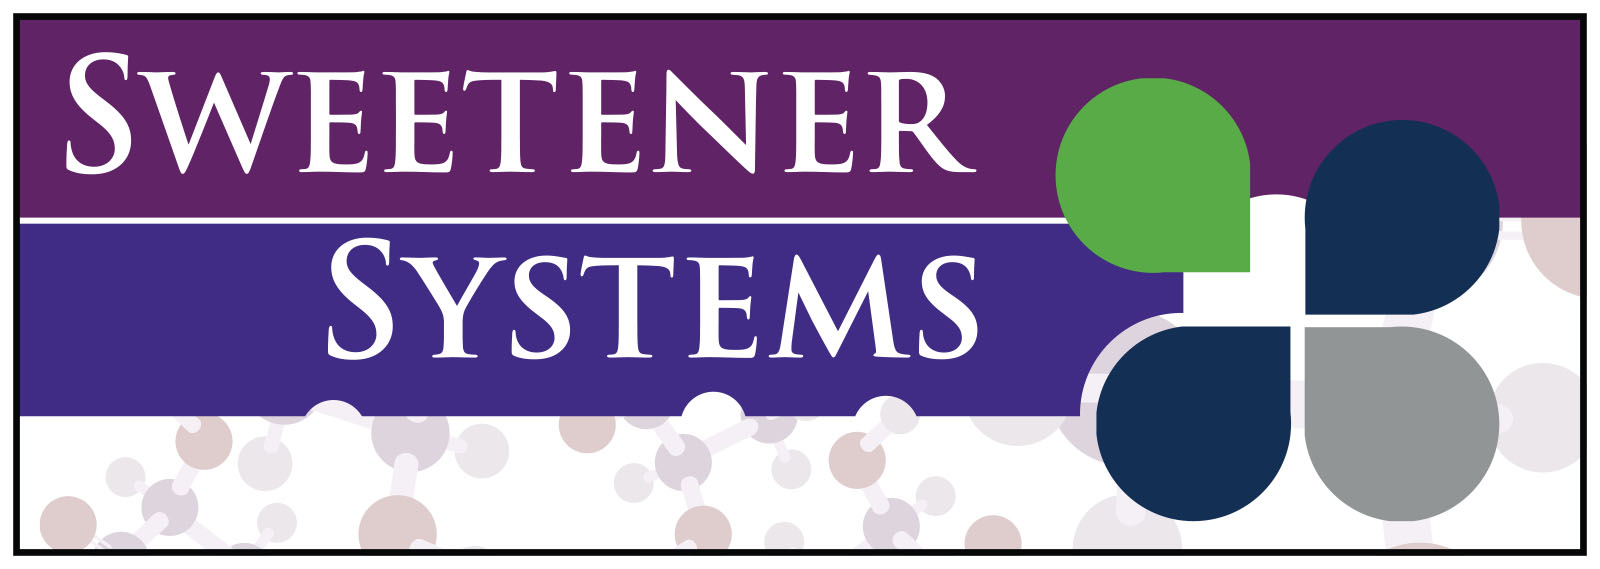 SWEETENER Systems Logo Generic